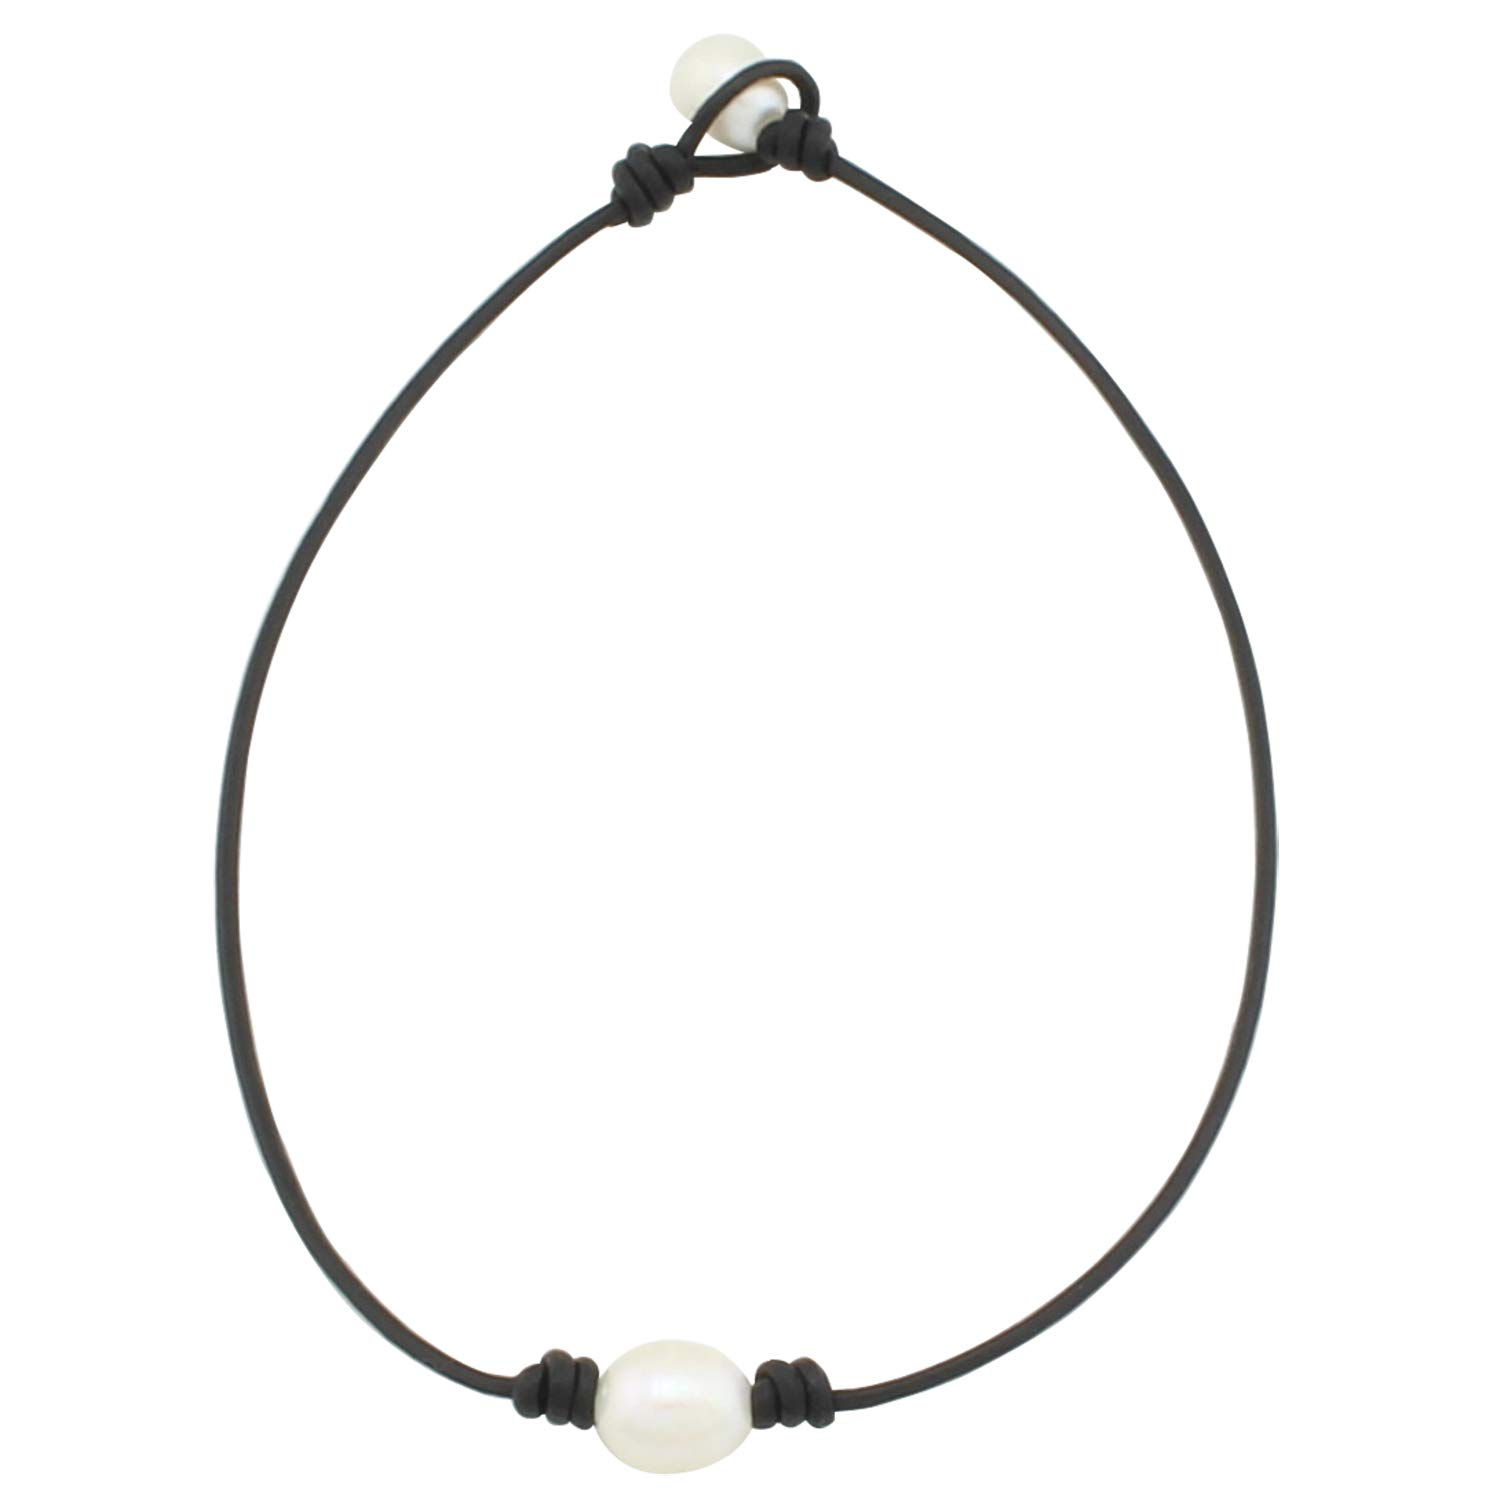 ba563769c0ee58 Amazon.com: Wunionup One Pearl Black Leather Necklace - Real Leather Wrap  Around Costume Rope Choker Necklace with 2.0mm Black Genuine Leather Cord  and AA ...